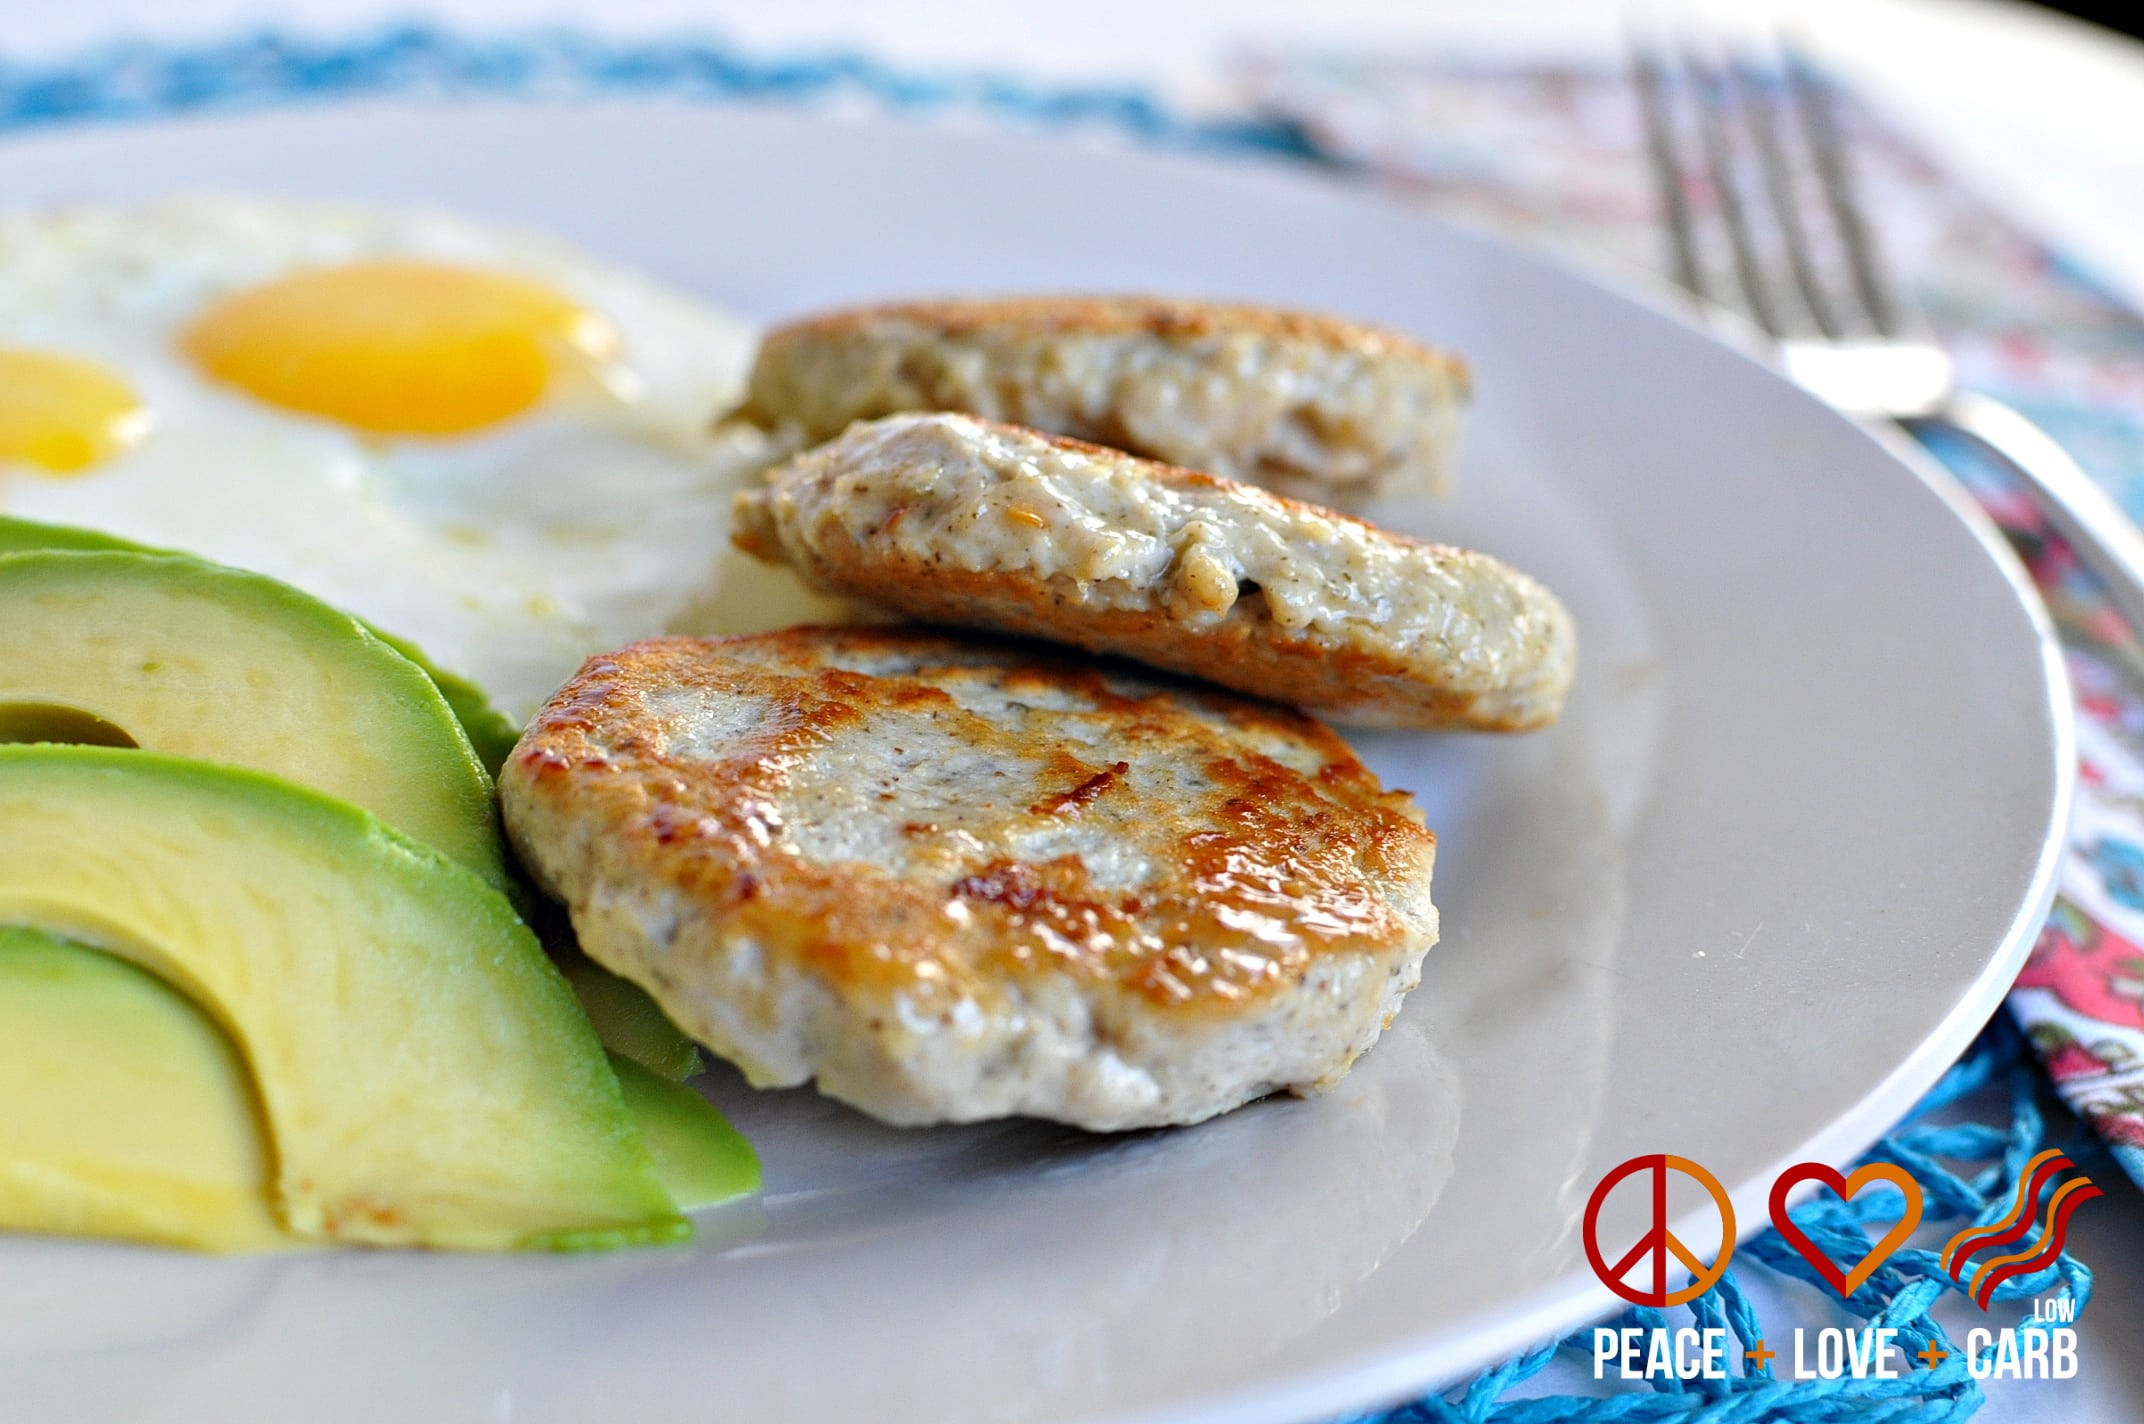 Chicken Breakfast Sausage Recipe  Maple Chicken Breakfast Sausage Low Carb Paleo Gluten Free